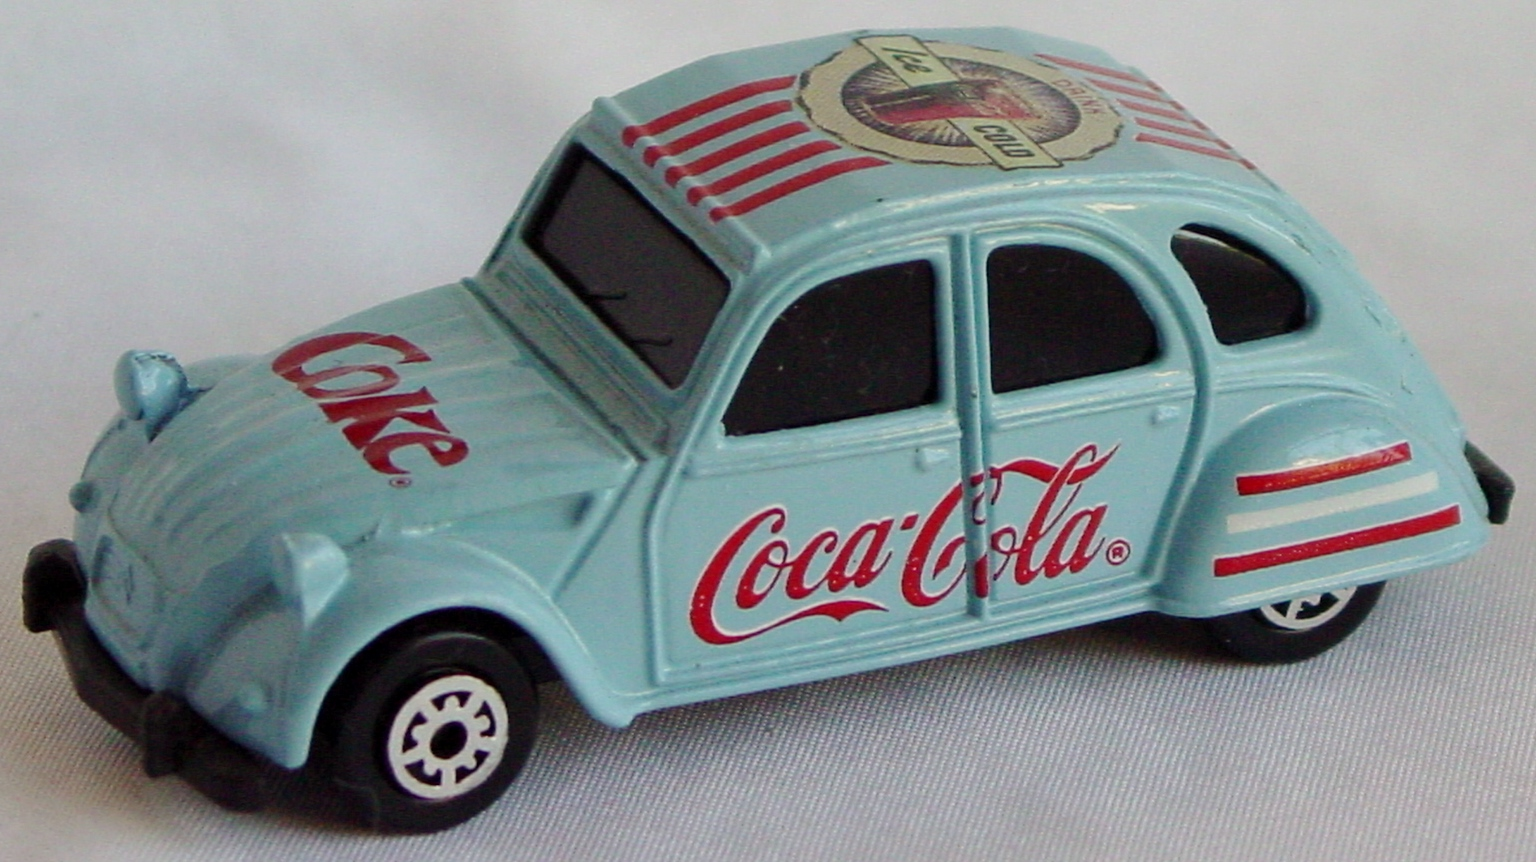 64 - EDOCAR Citroen 2CV light Blue Coke